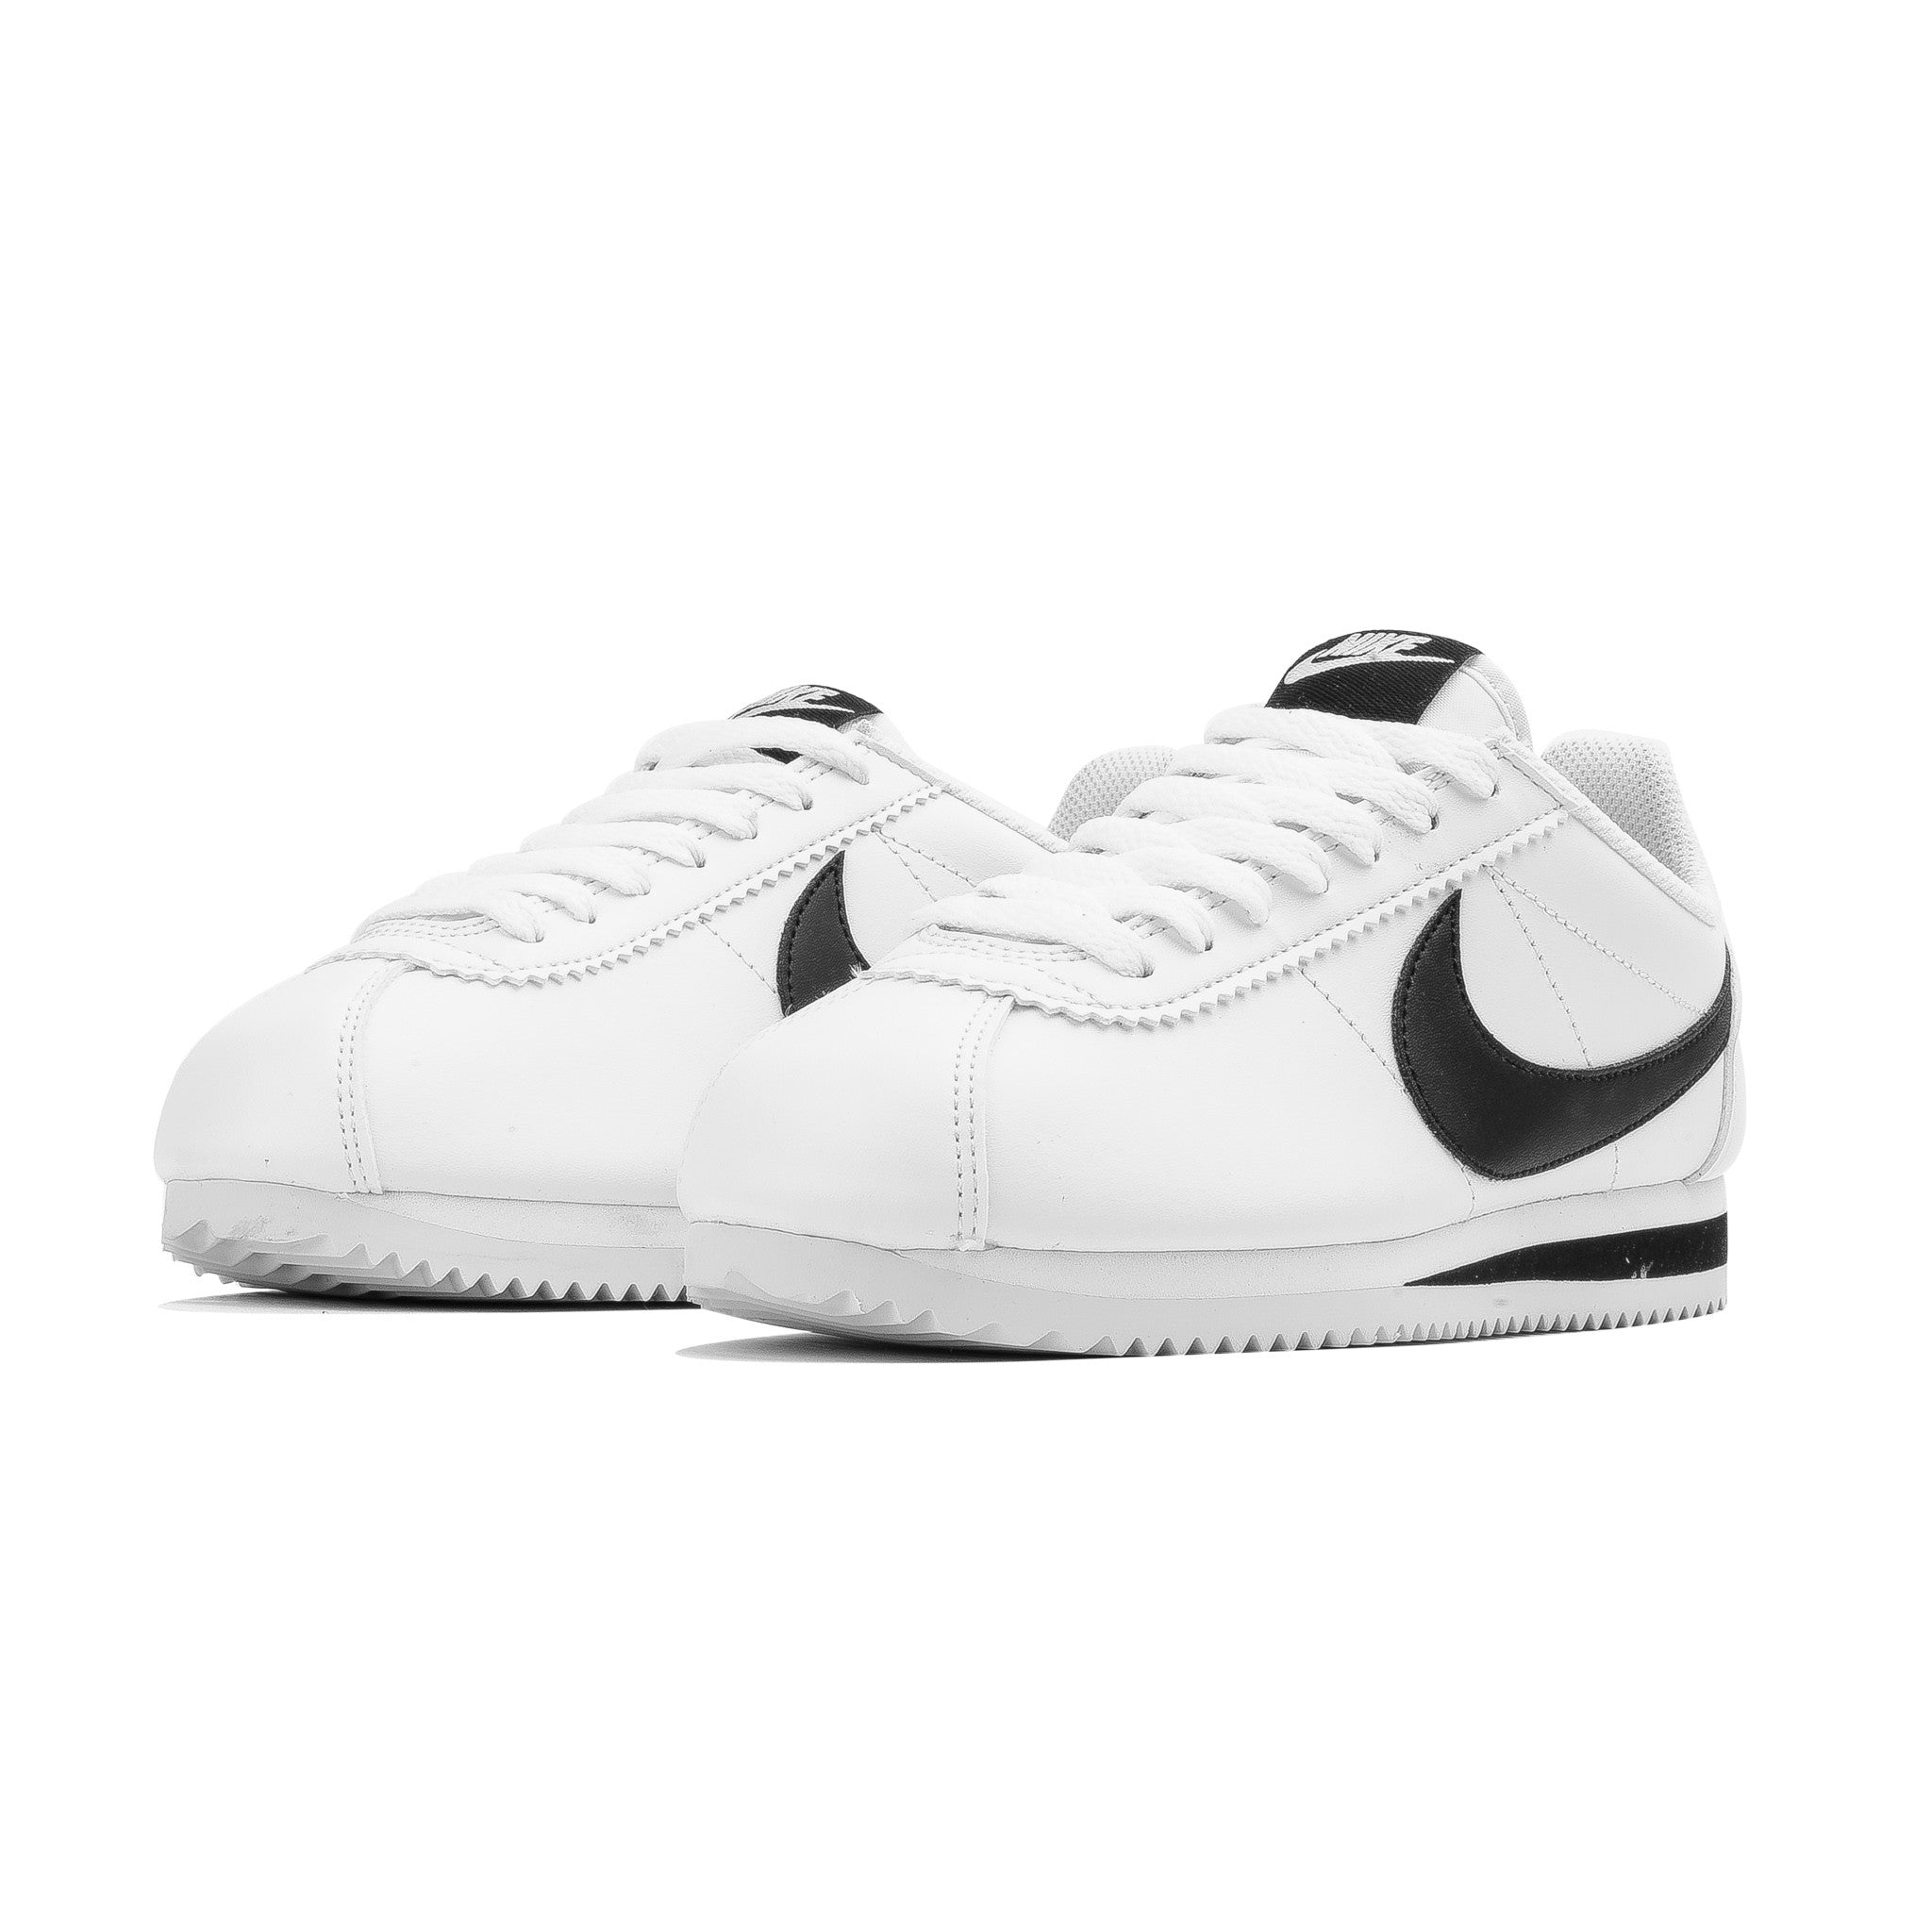 W Classic Cortez Leather 807471-101 White